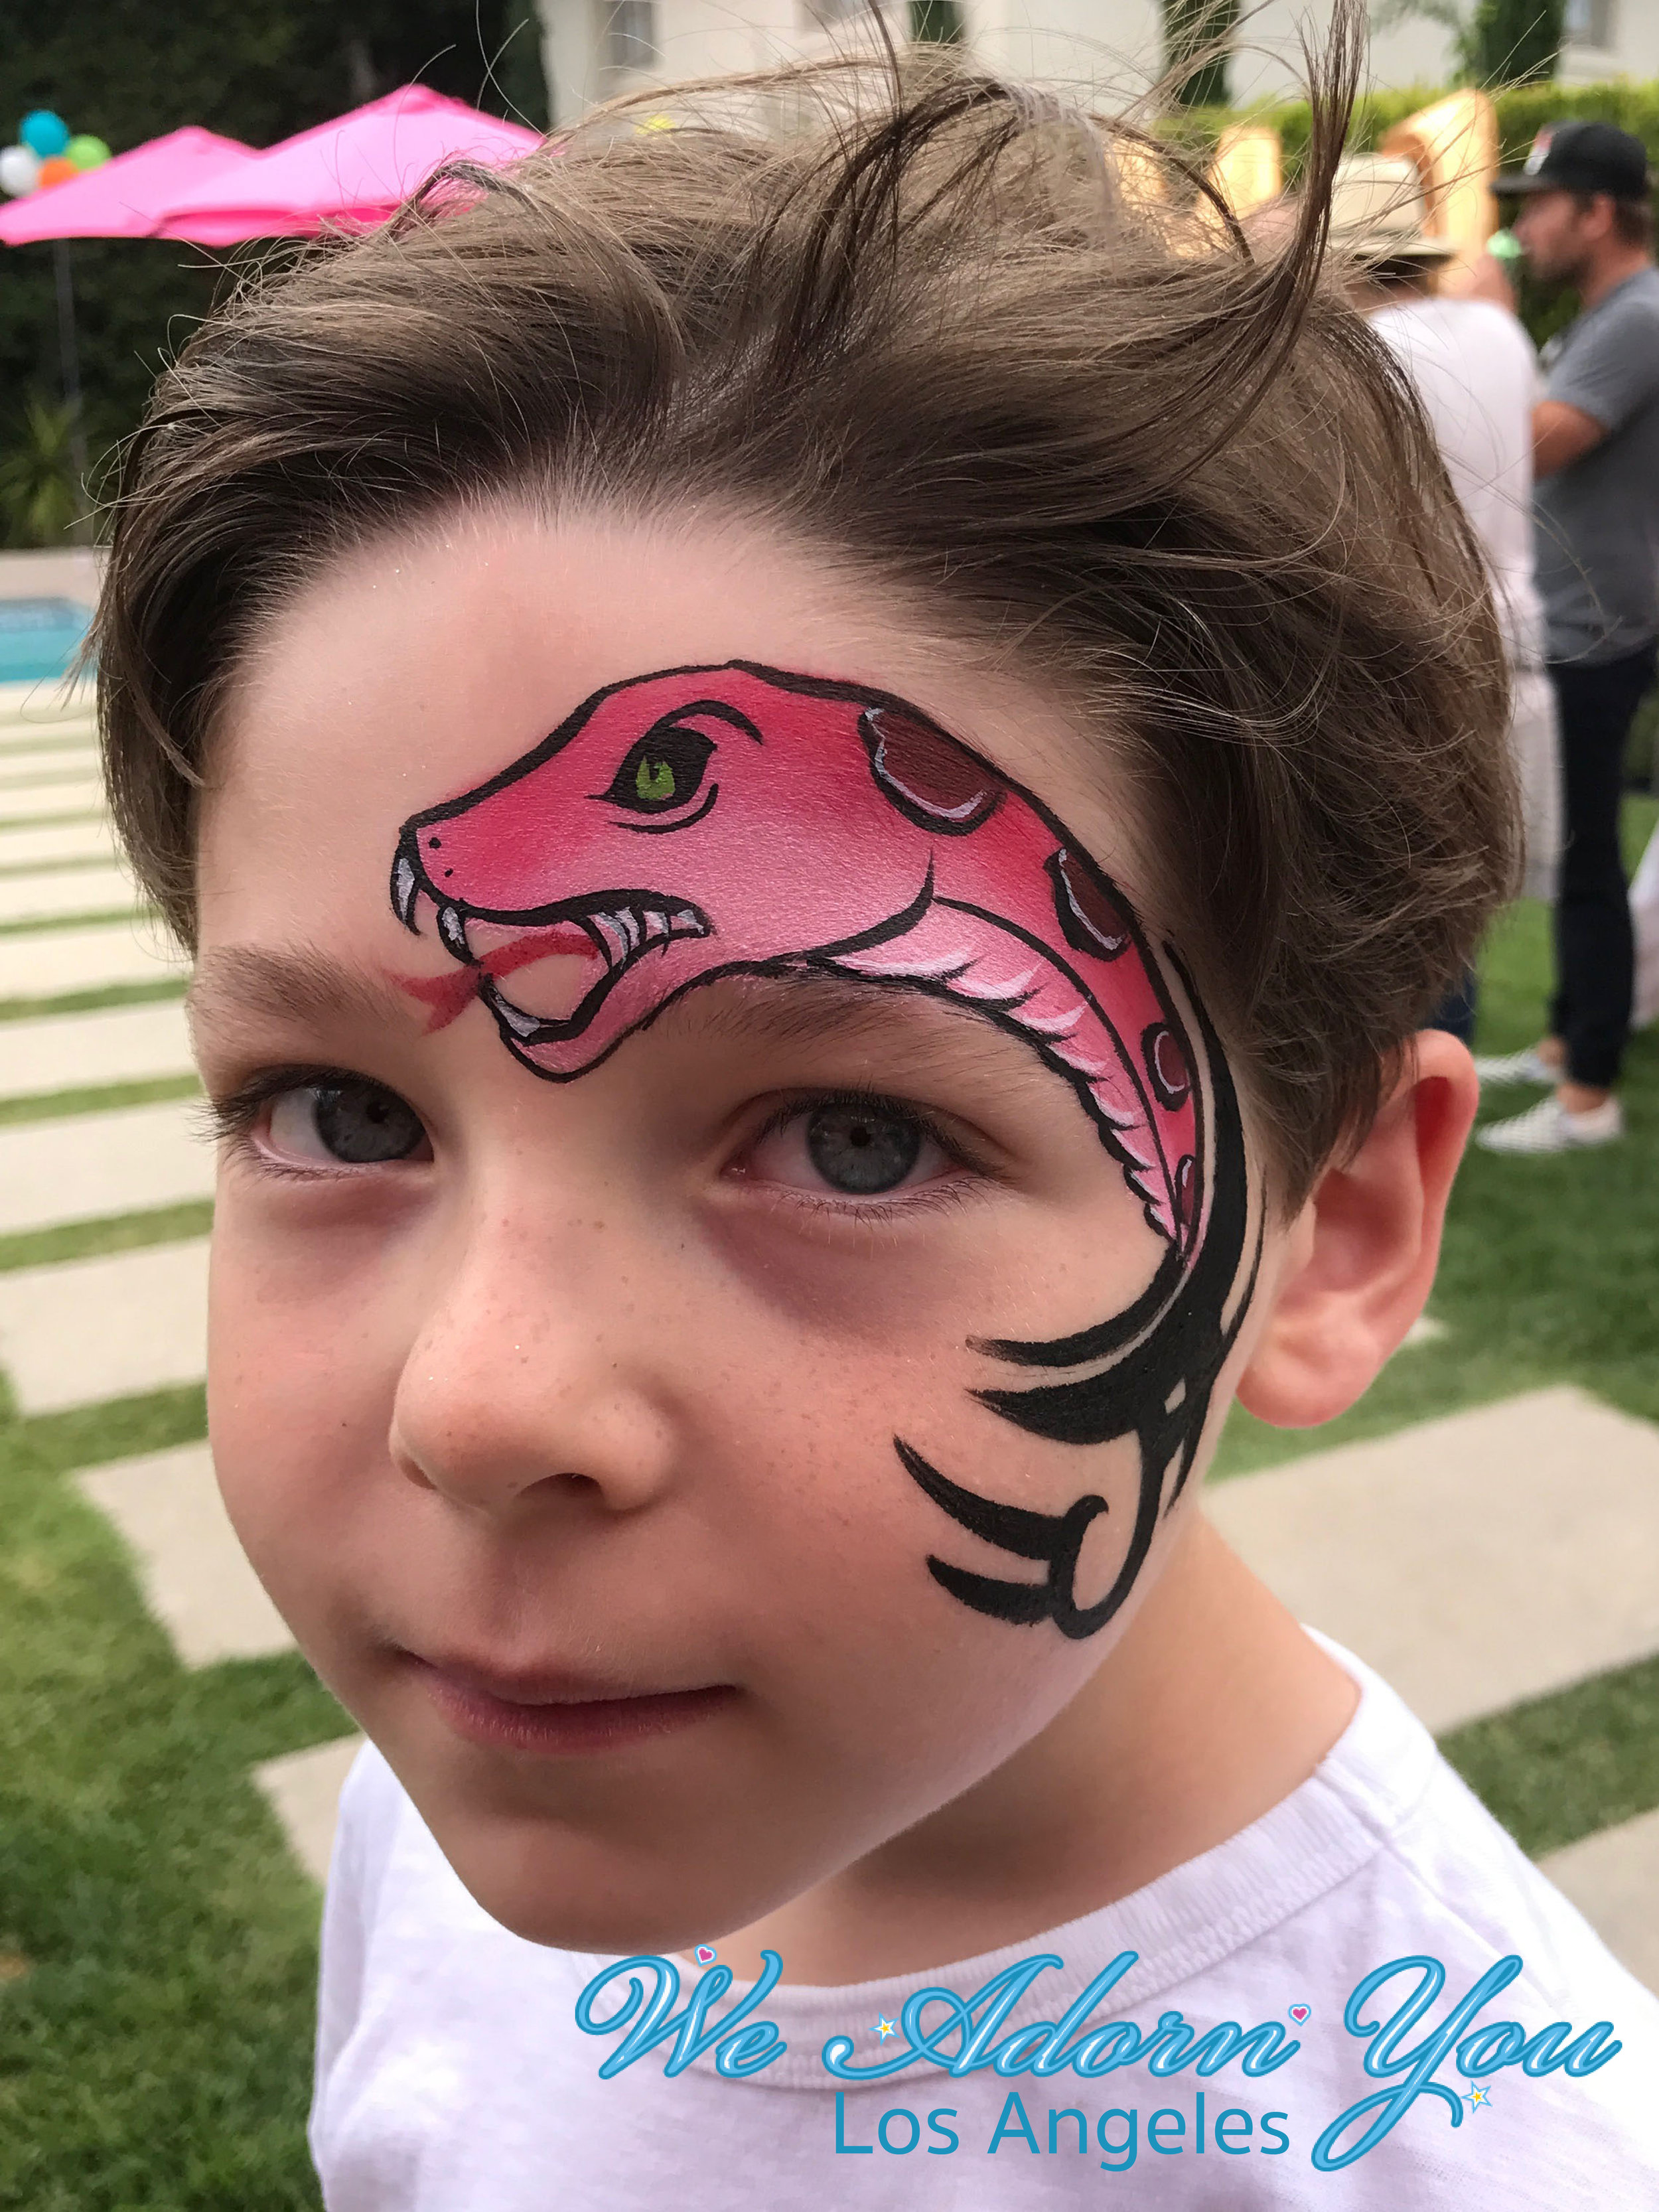 We Adorn You Los Angeles Face Painting Pink Snake.jpg